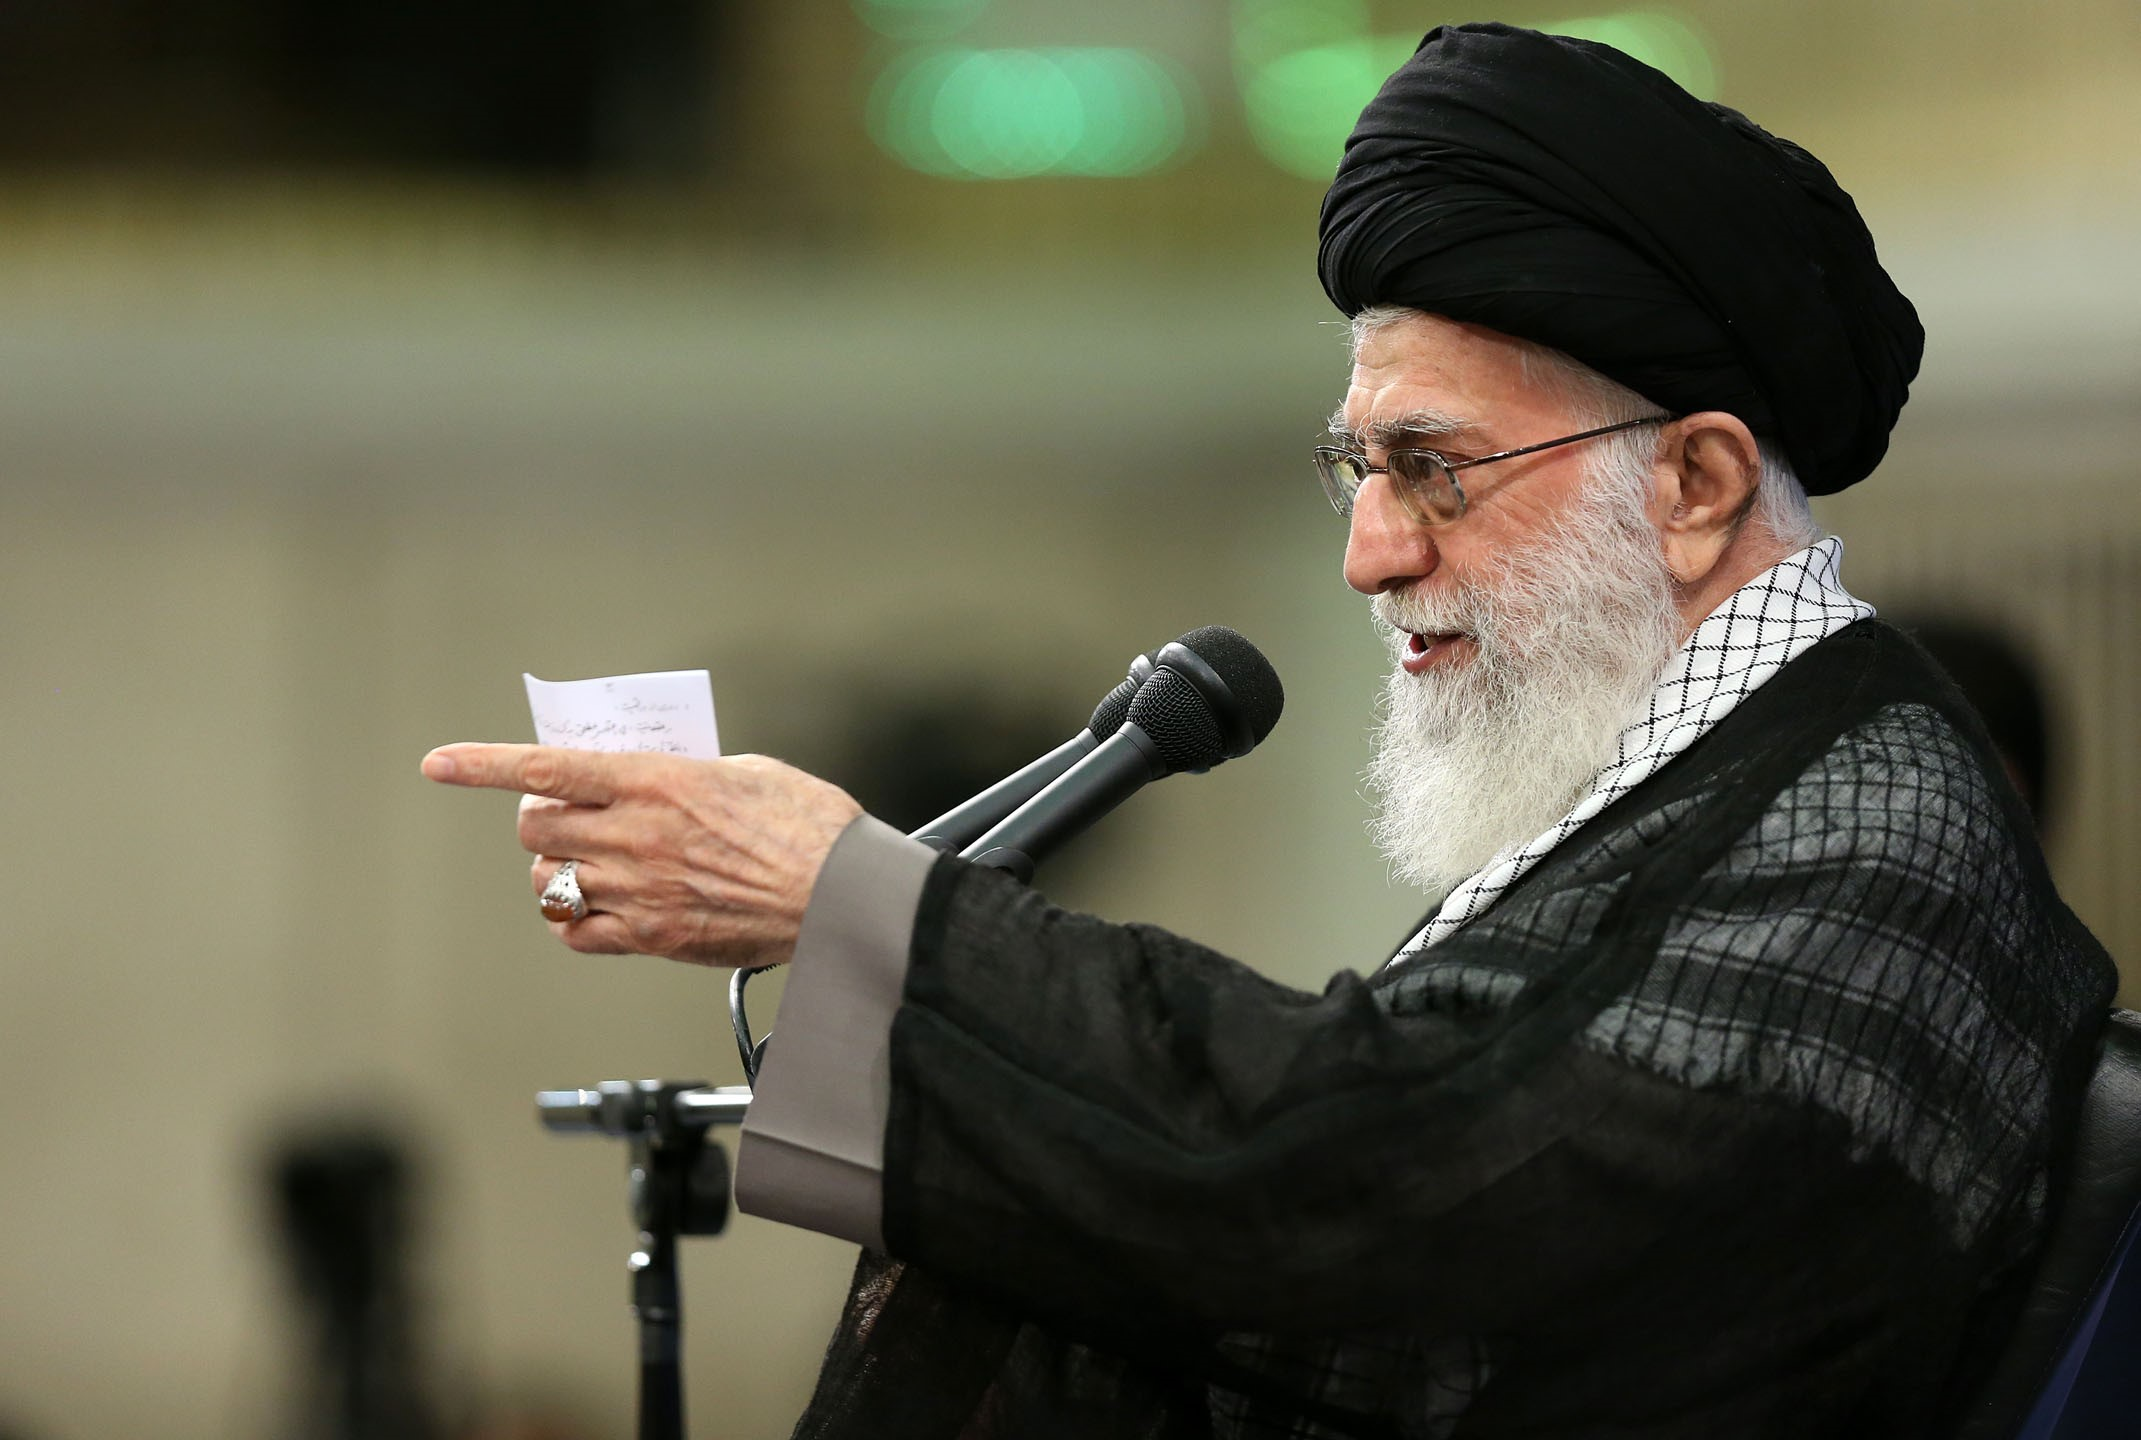 Iranian supreme leader Ayatollah Ali Khamenei delivers a speech during an Islamic Revolution Guards Corps meeting in Tehran, Iran on Sept. 18, 2016.